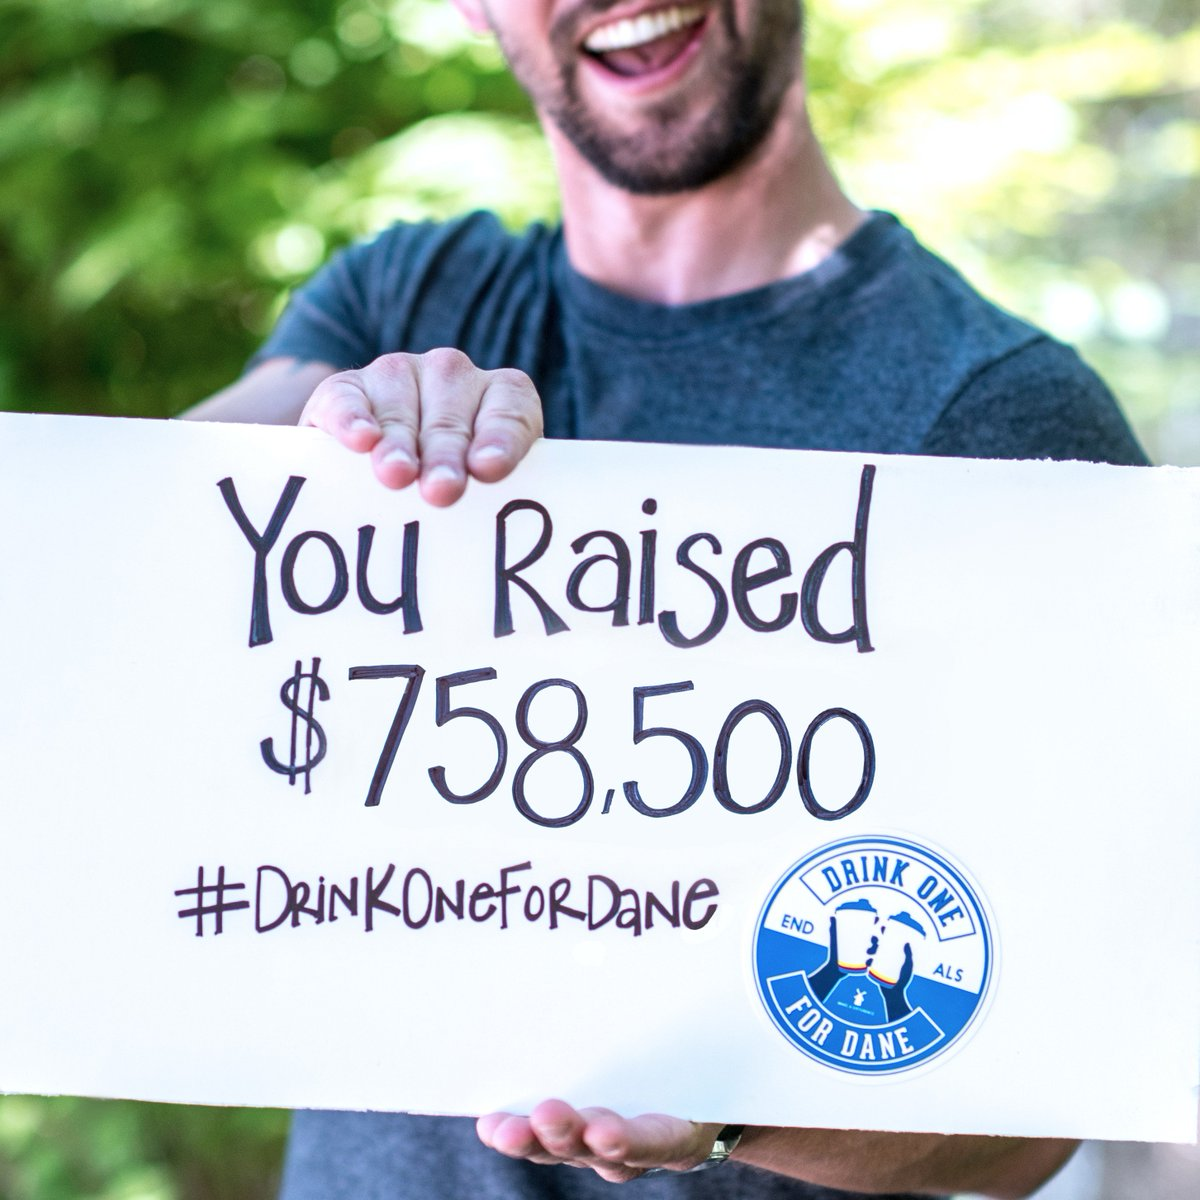 You're amazing #DutchNation! You raised $758,500 on #DrinkOneForDane day!  Thank's for loving those in need! #endals https://t.co/5KZWVO9o6H